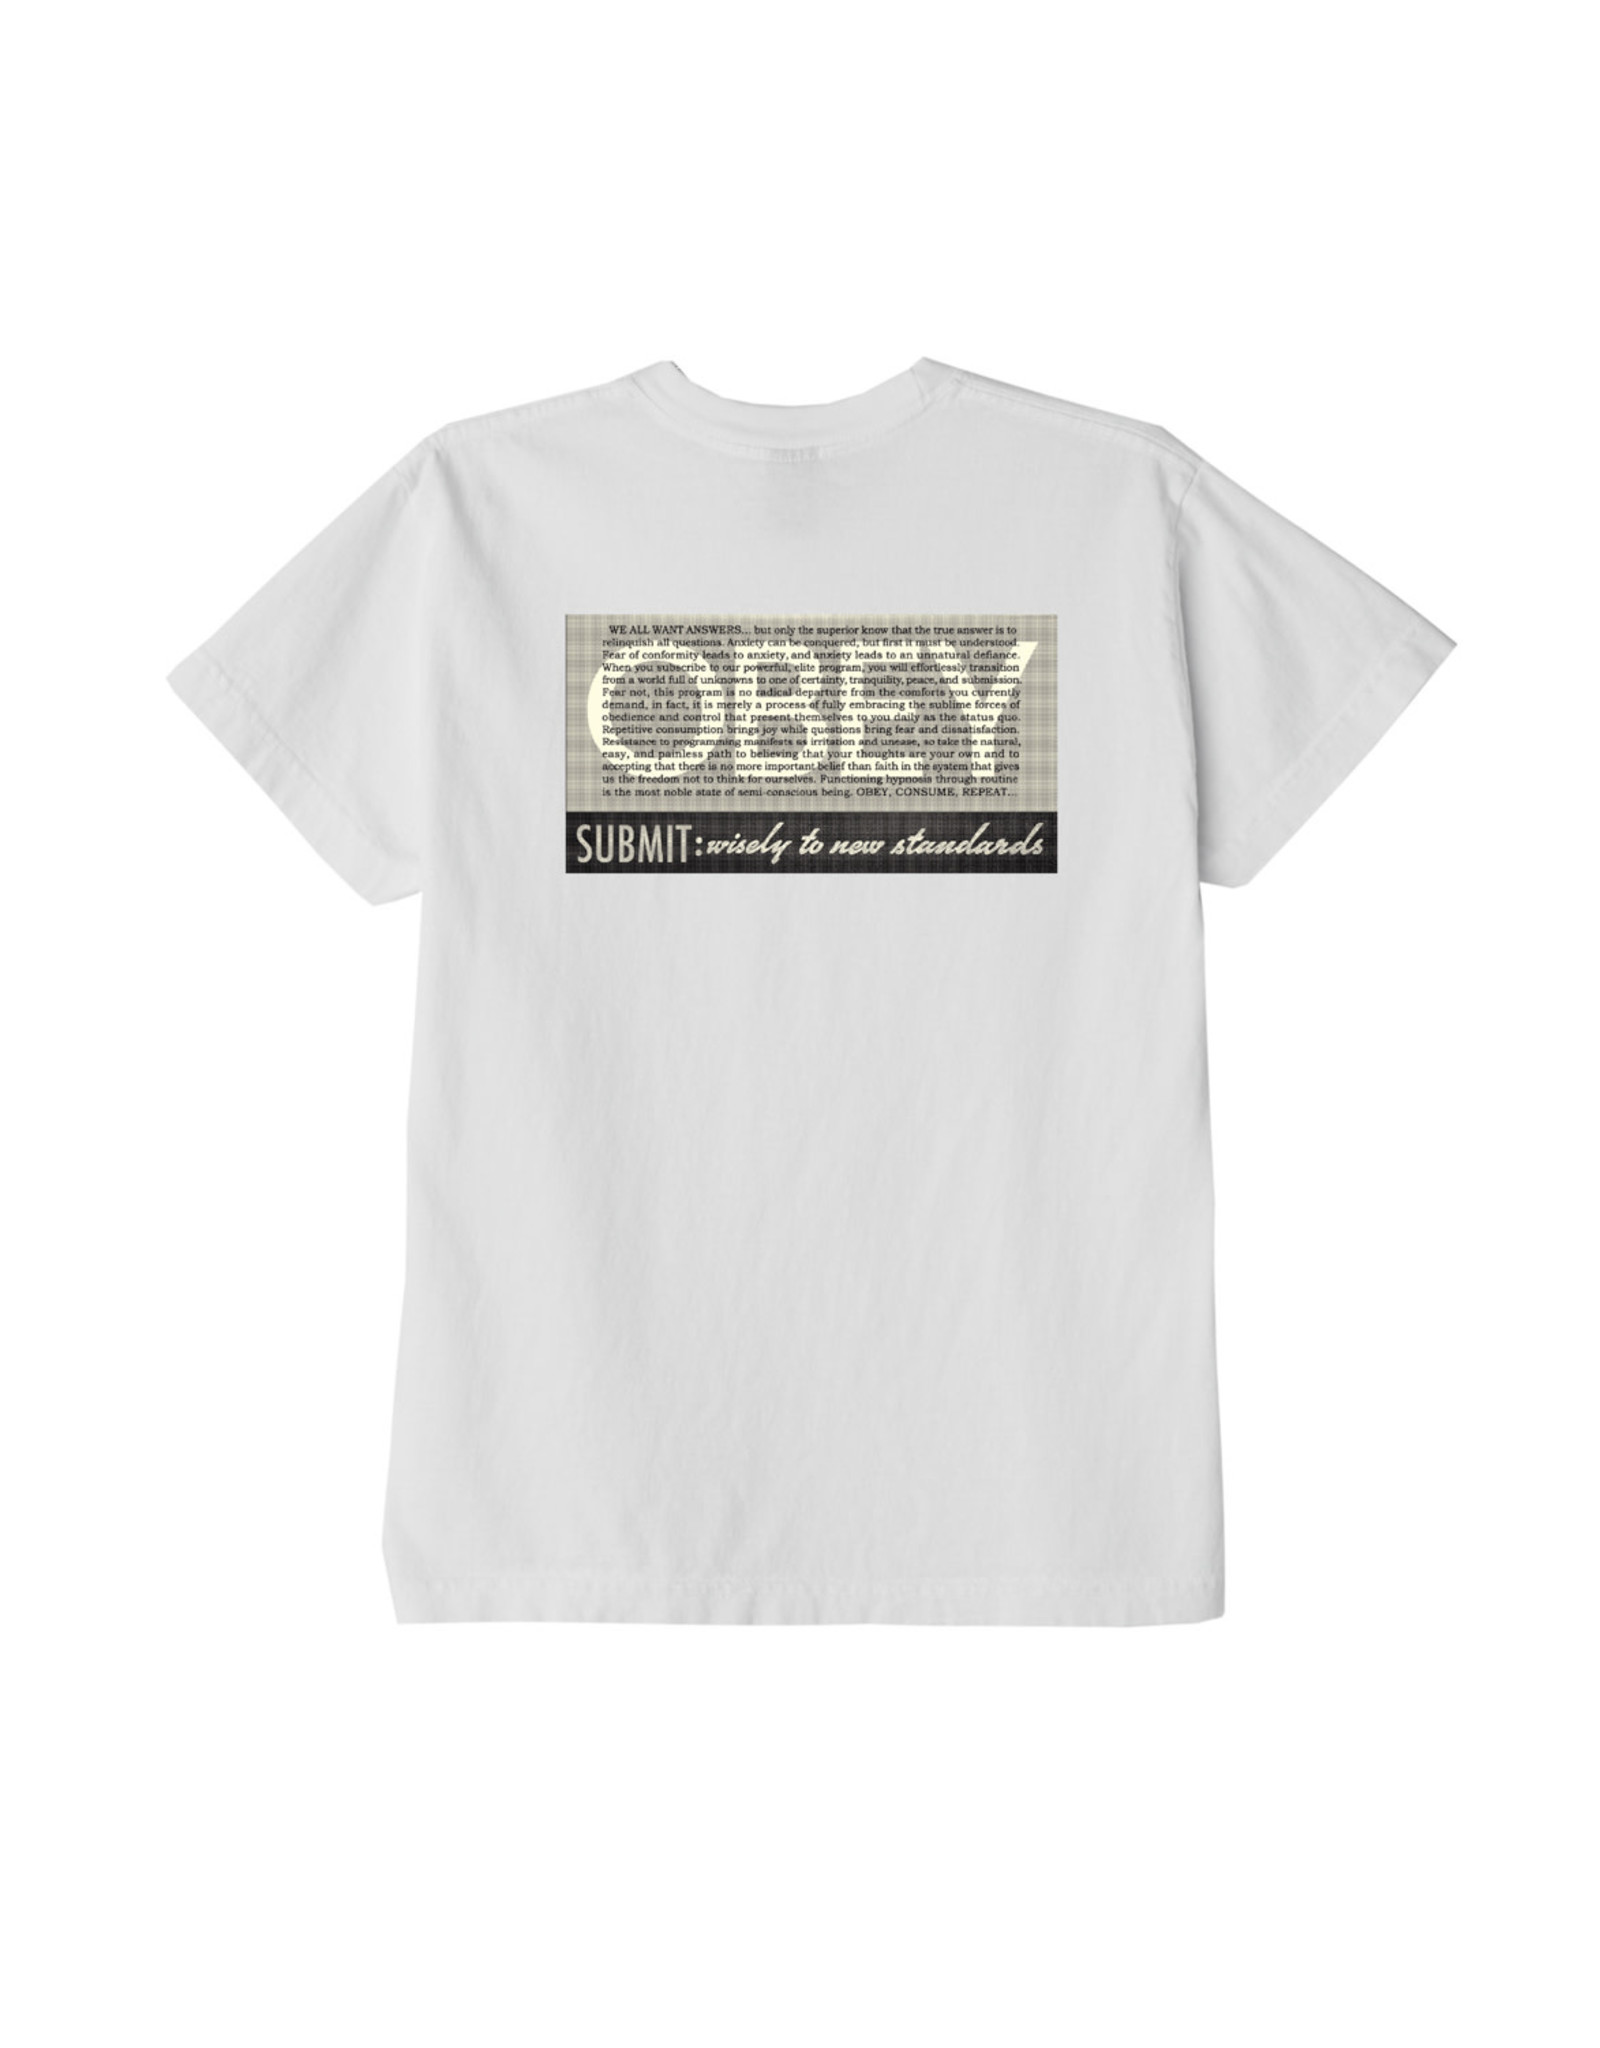 Obey Obey - T-shirt femme conformity standard shepard white